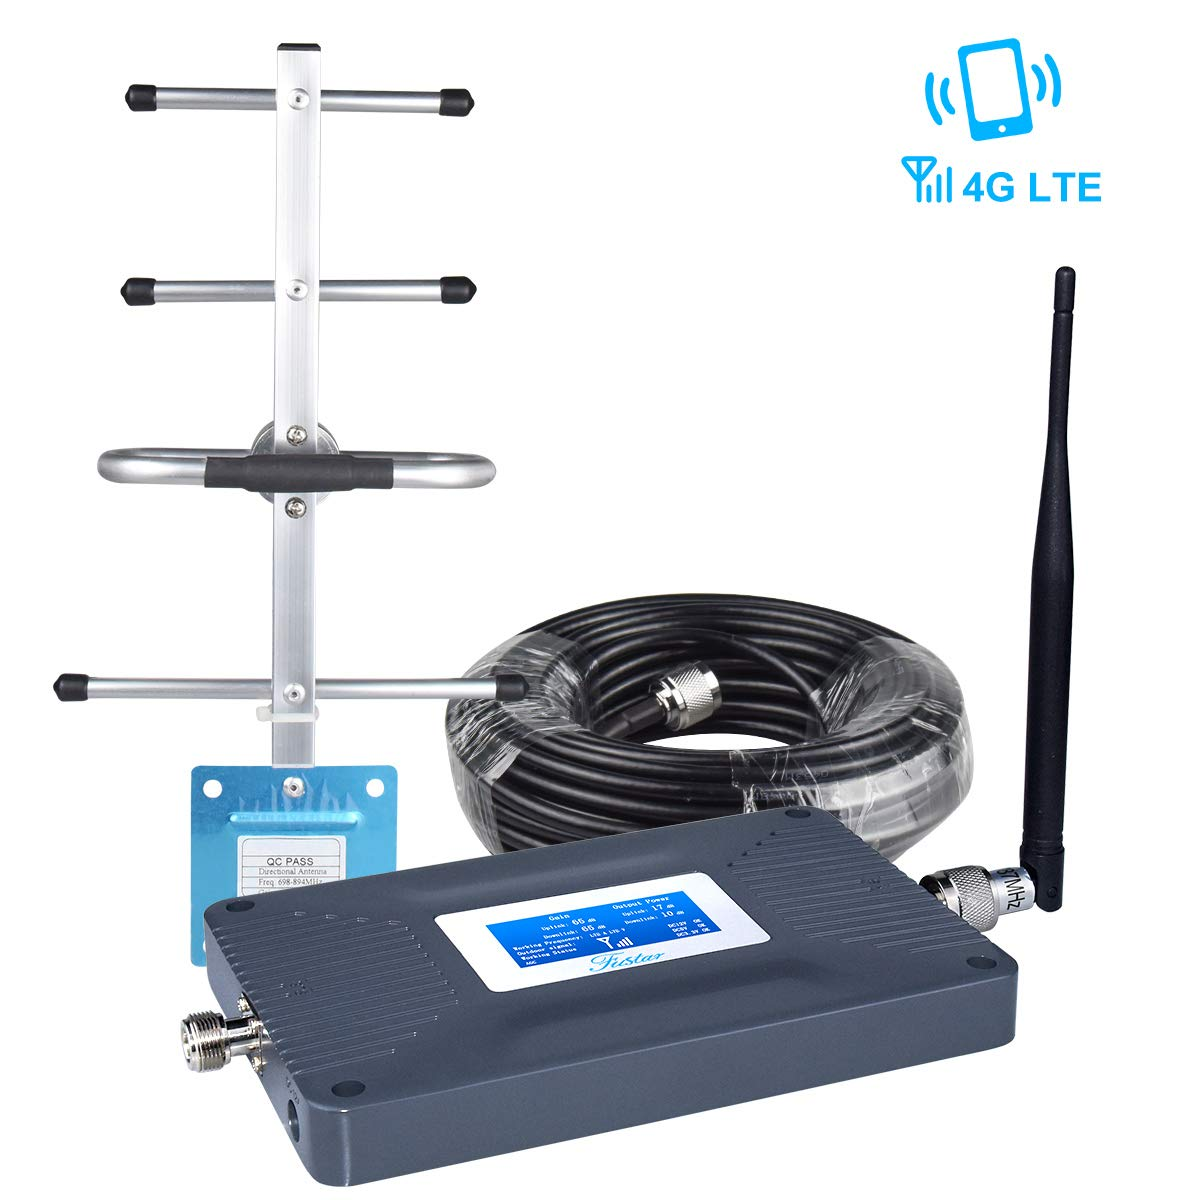 AT&T Cell Phone Signal Booster for Home, AT&T Signal Booster Connect 4G LTE 700mhz Band 12/17,LCD Screen Amplifier AT&T Cricket U.S. Cellular T-Mobile Cell Booster, Enhance Data Call,65±3dB 2000sq.ft